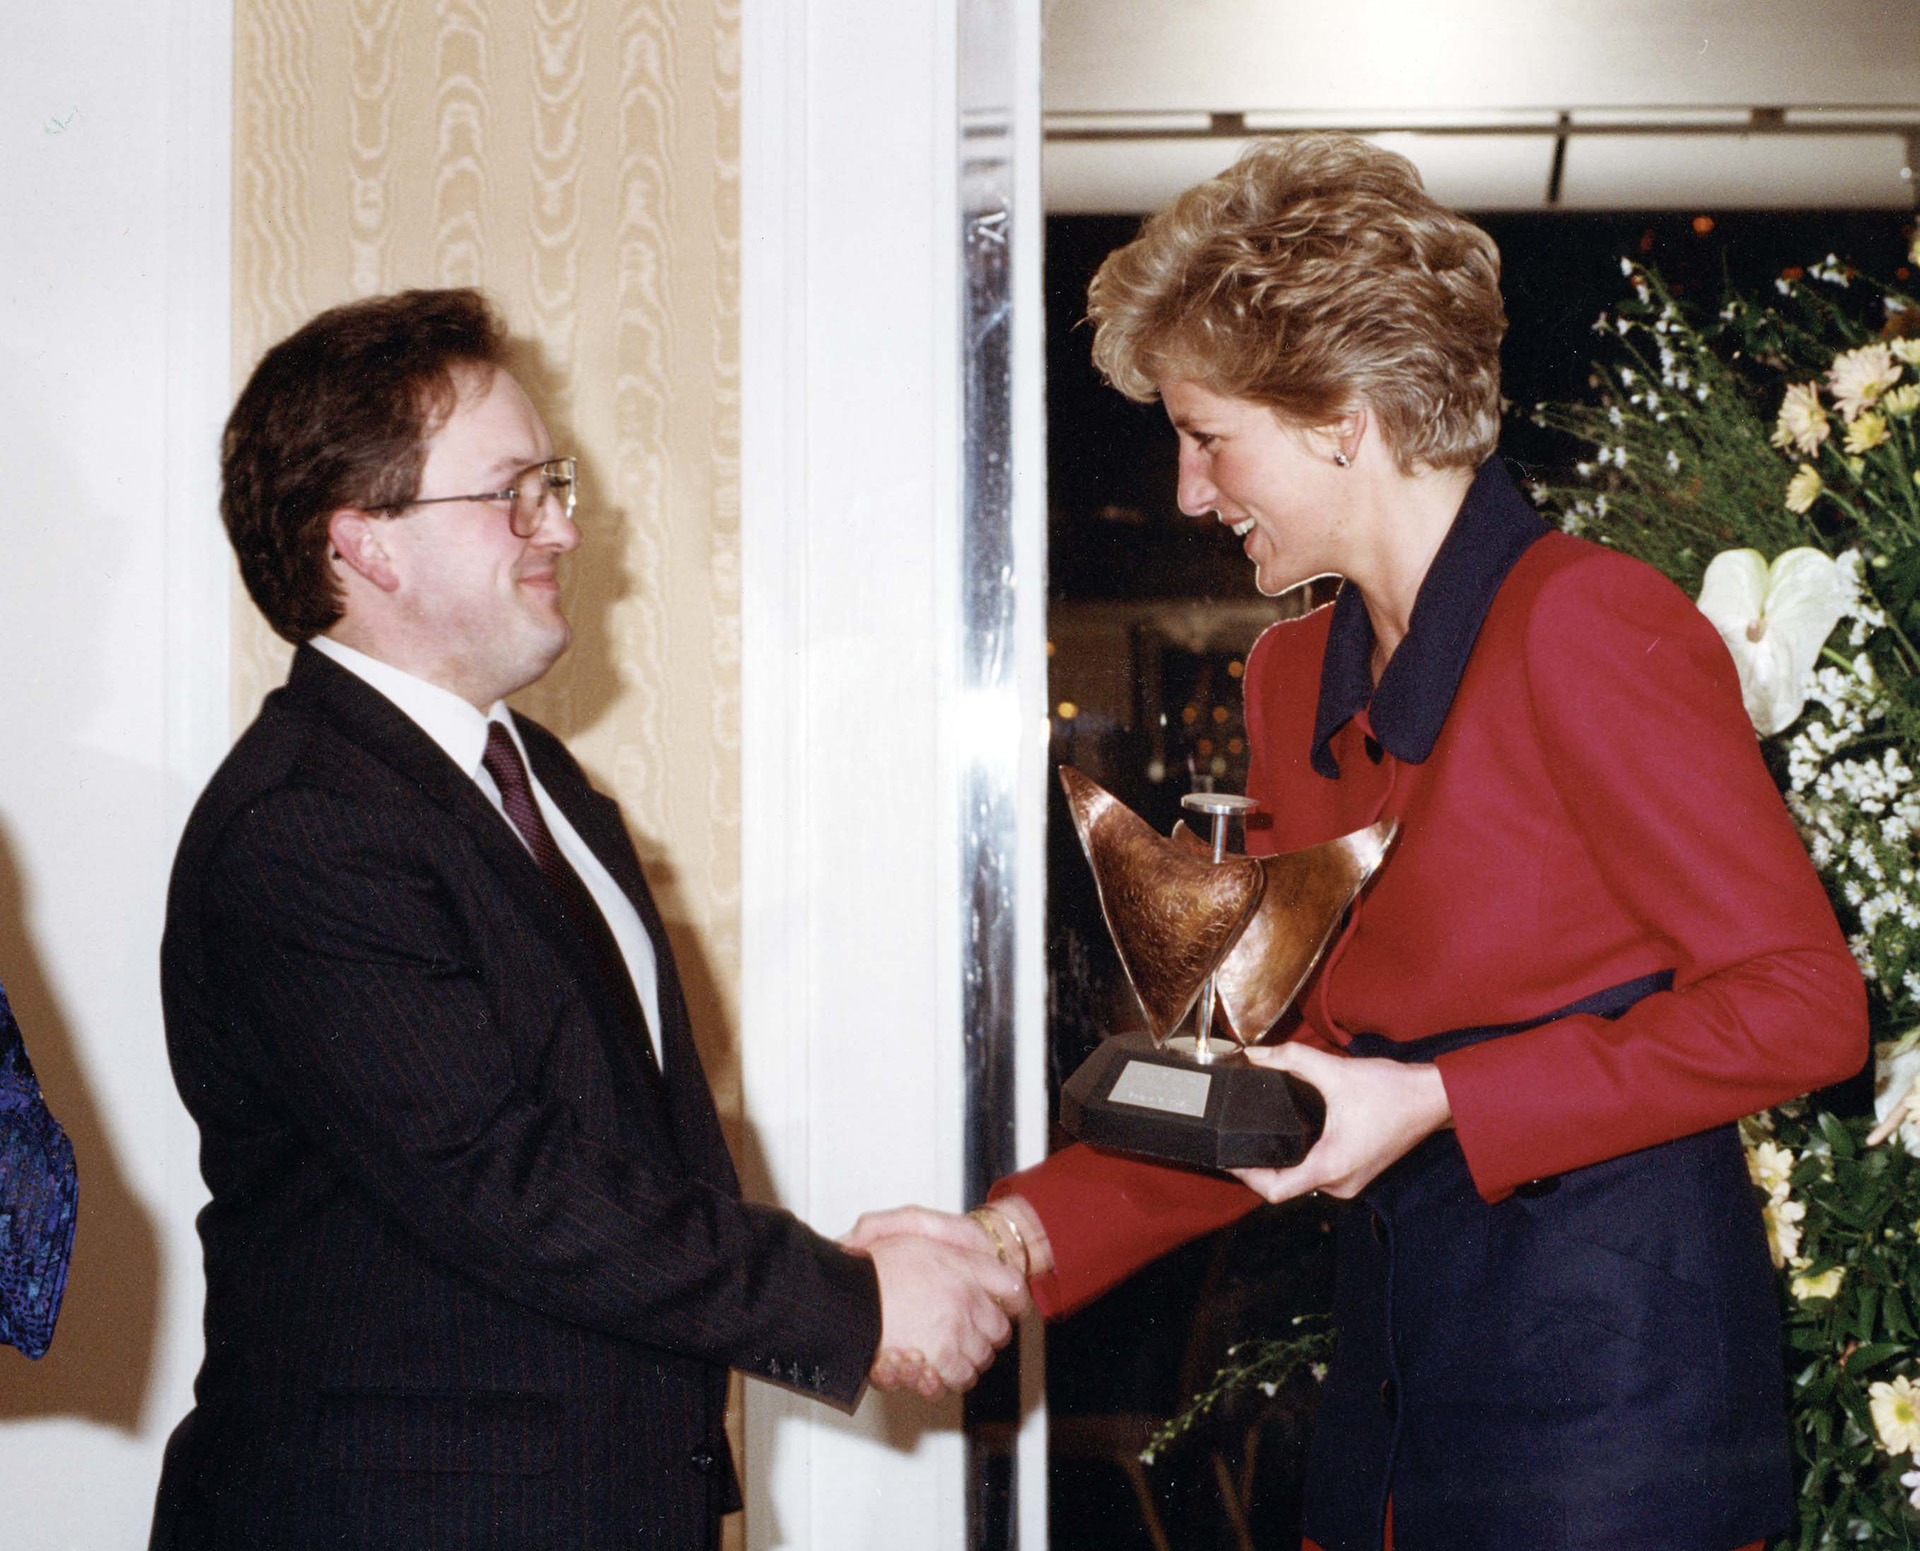 Fraser Pithie receiving award from Princess Diana